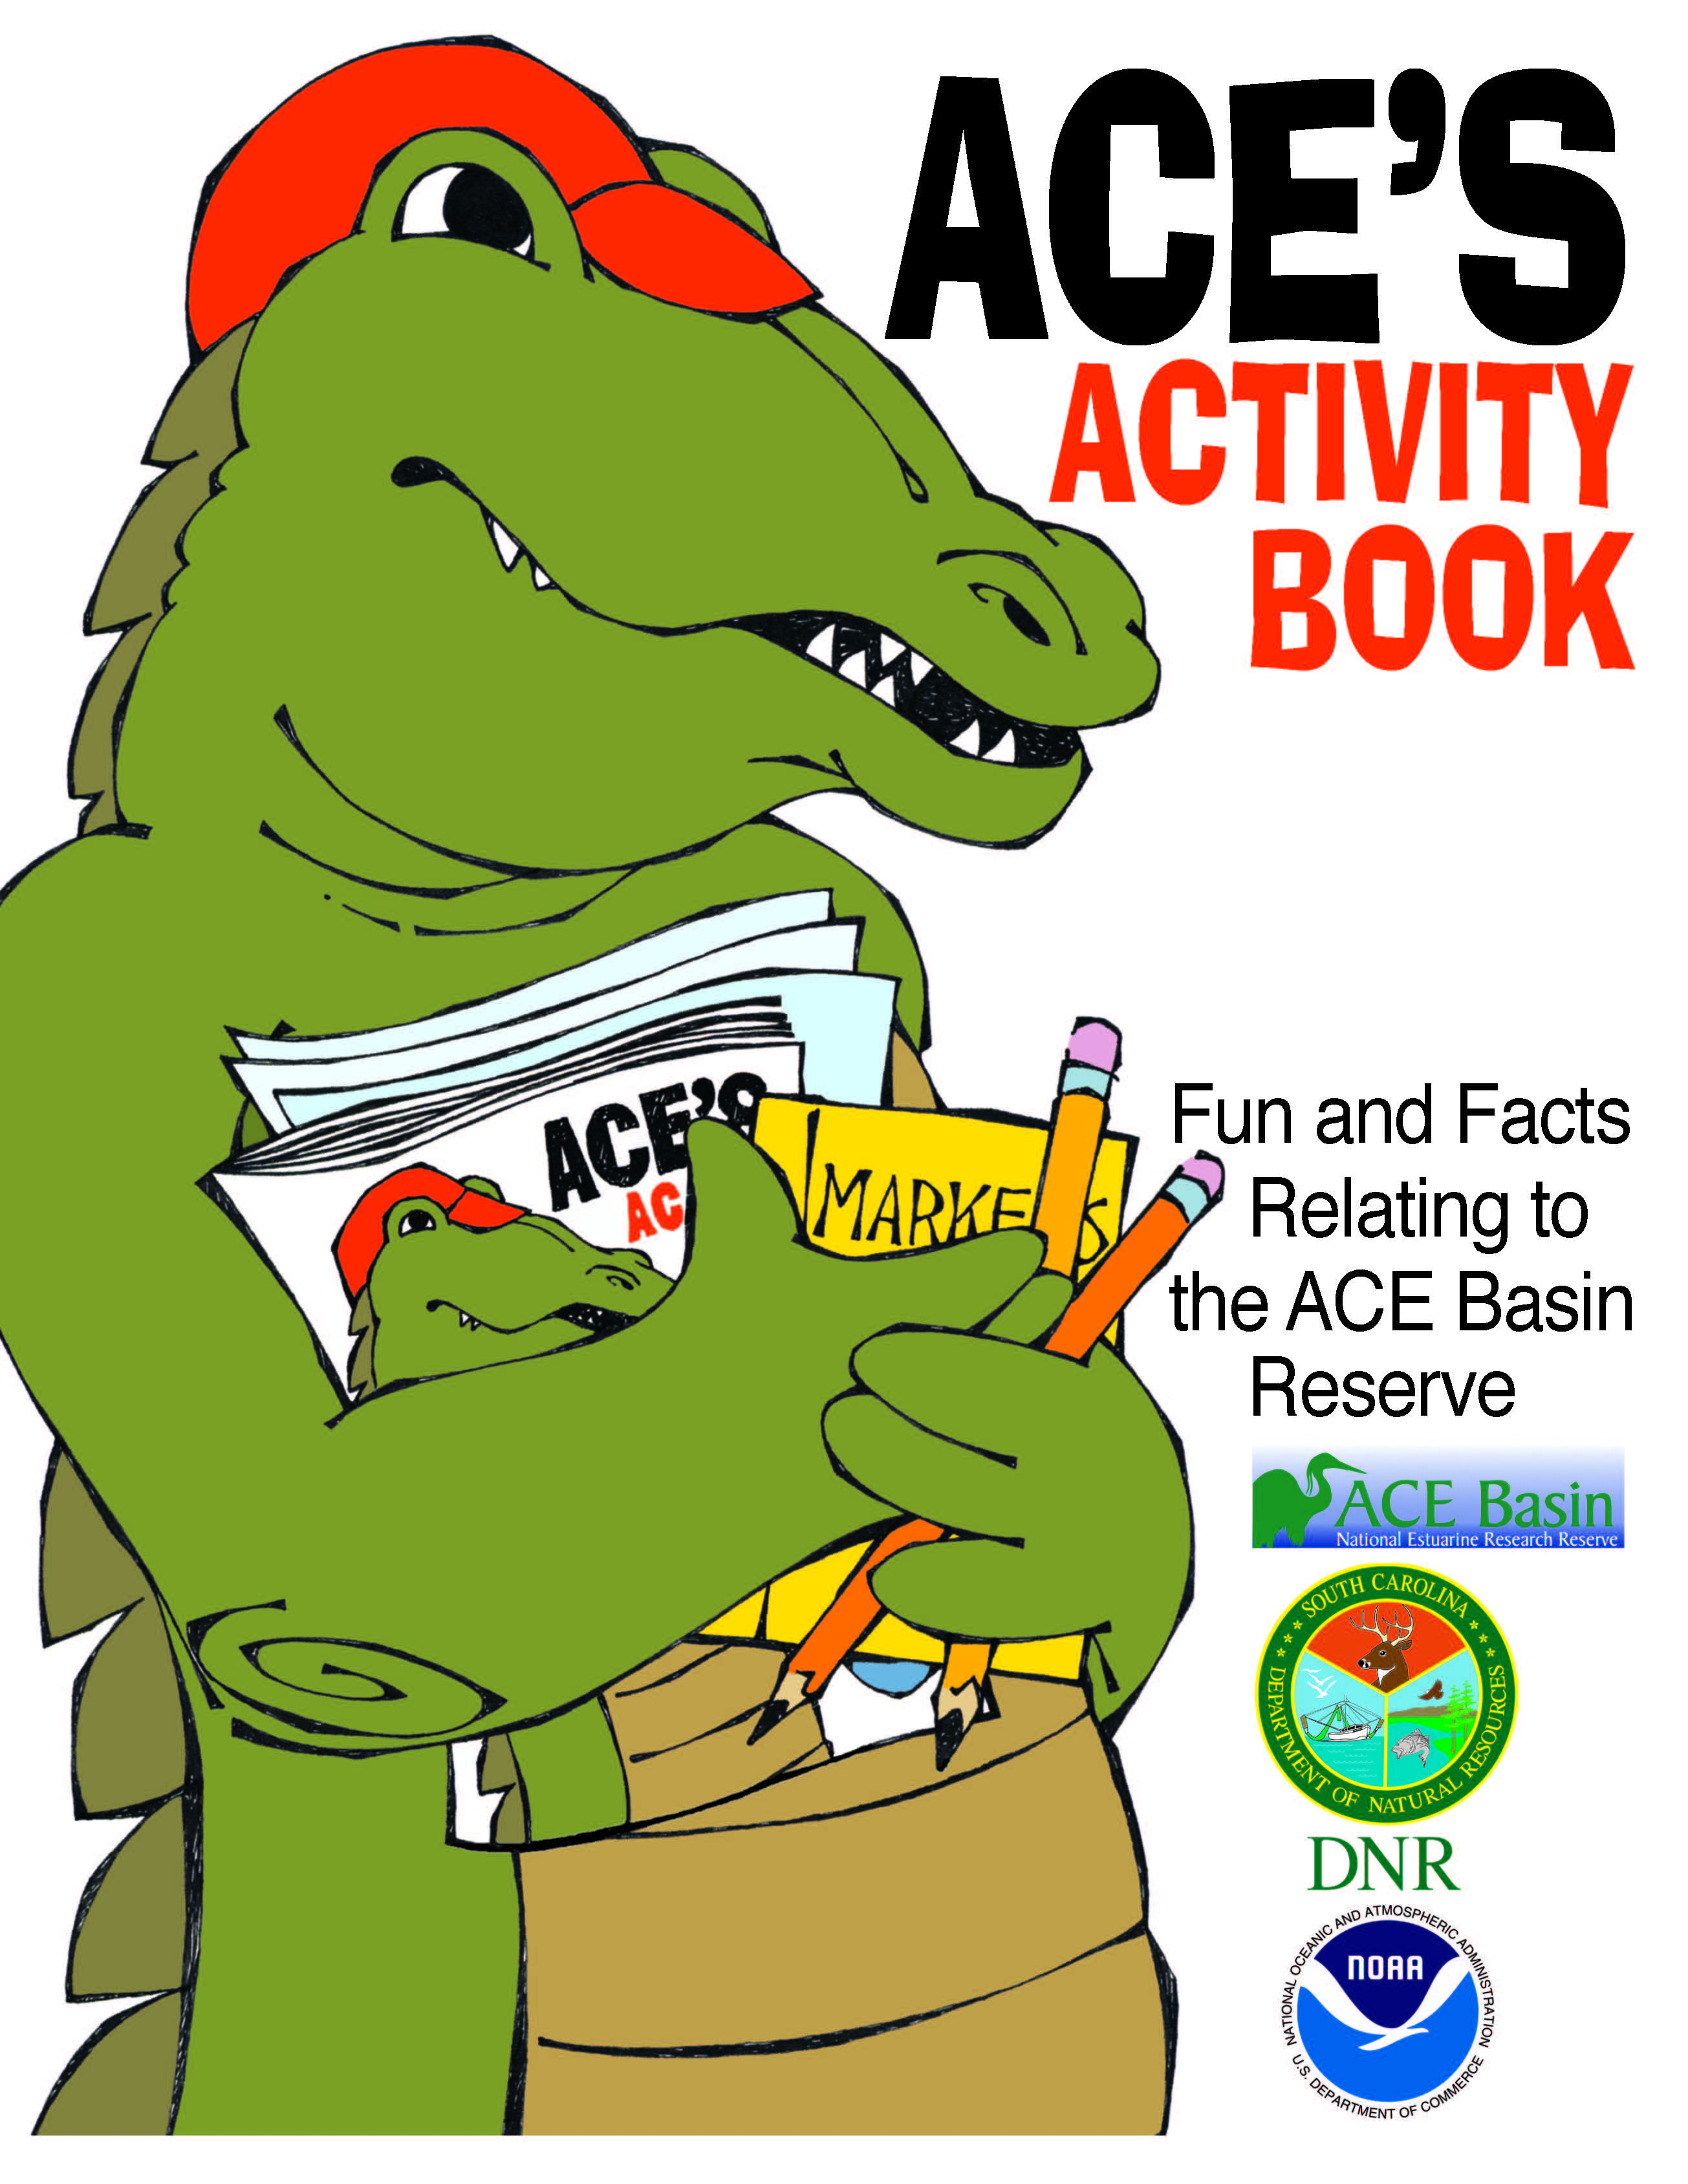 First page of activity book.